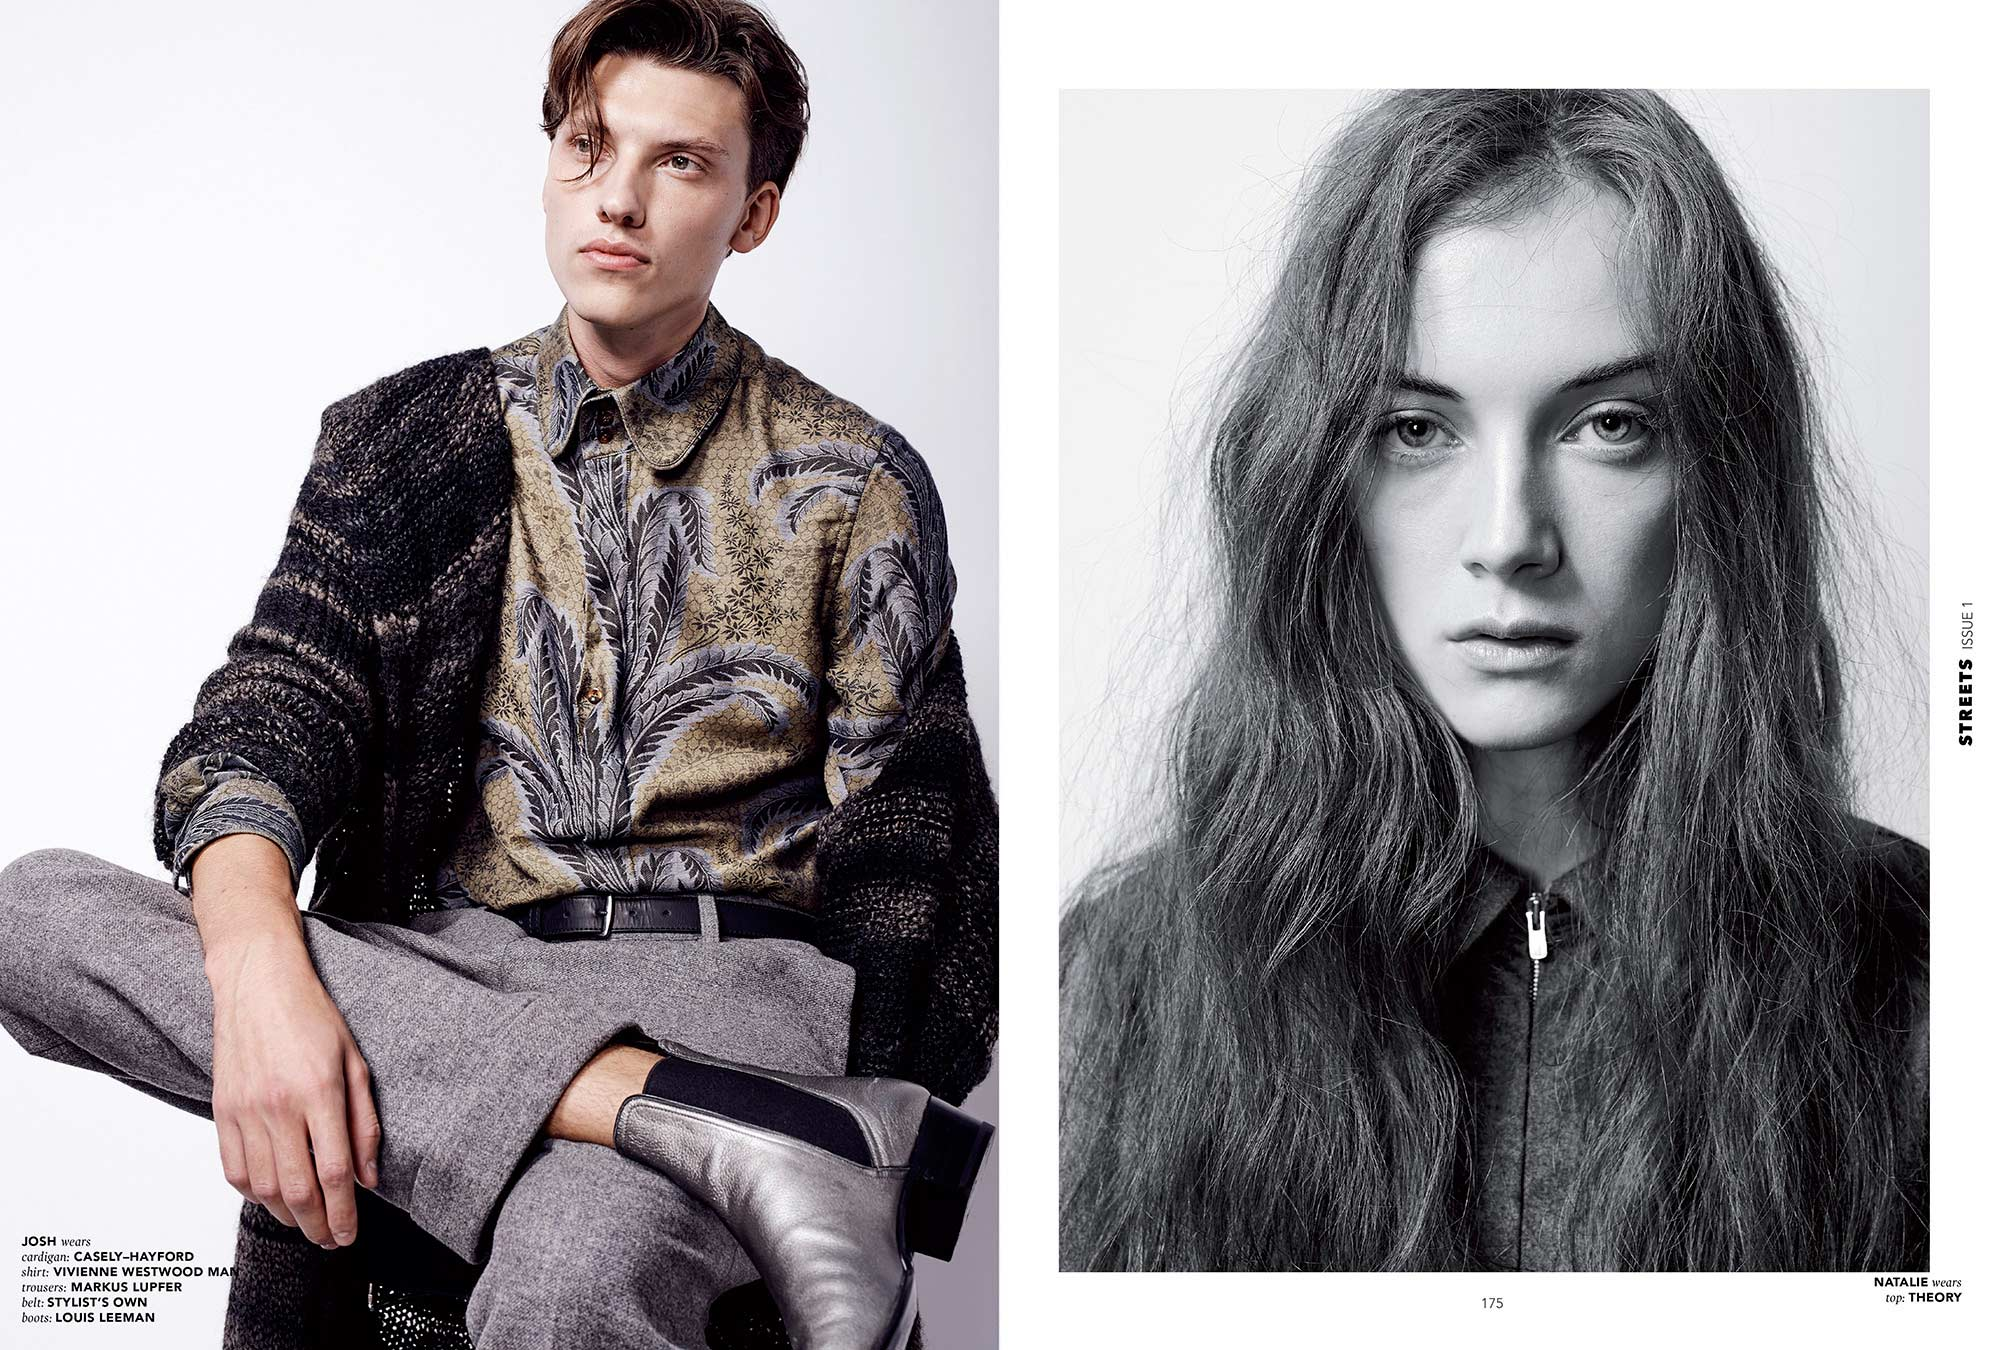 Florian renner streets mag aw15 03